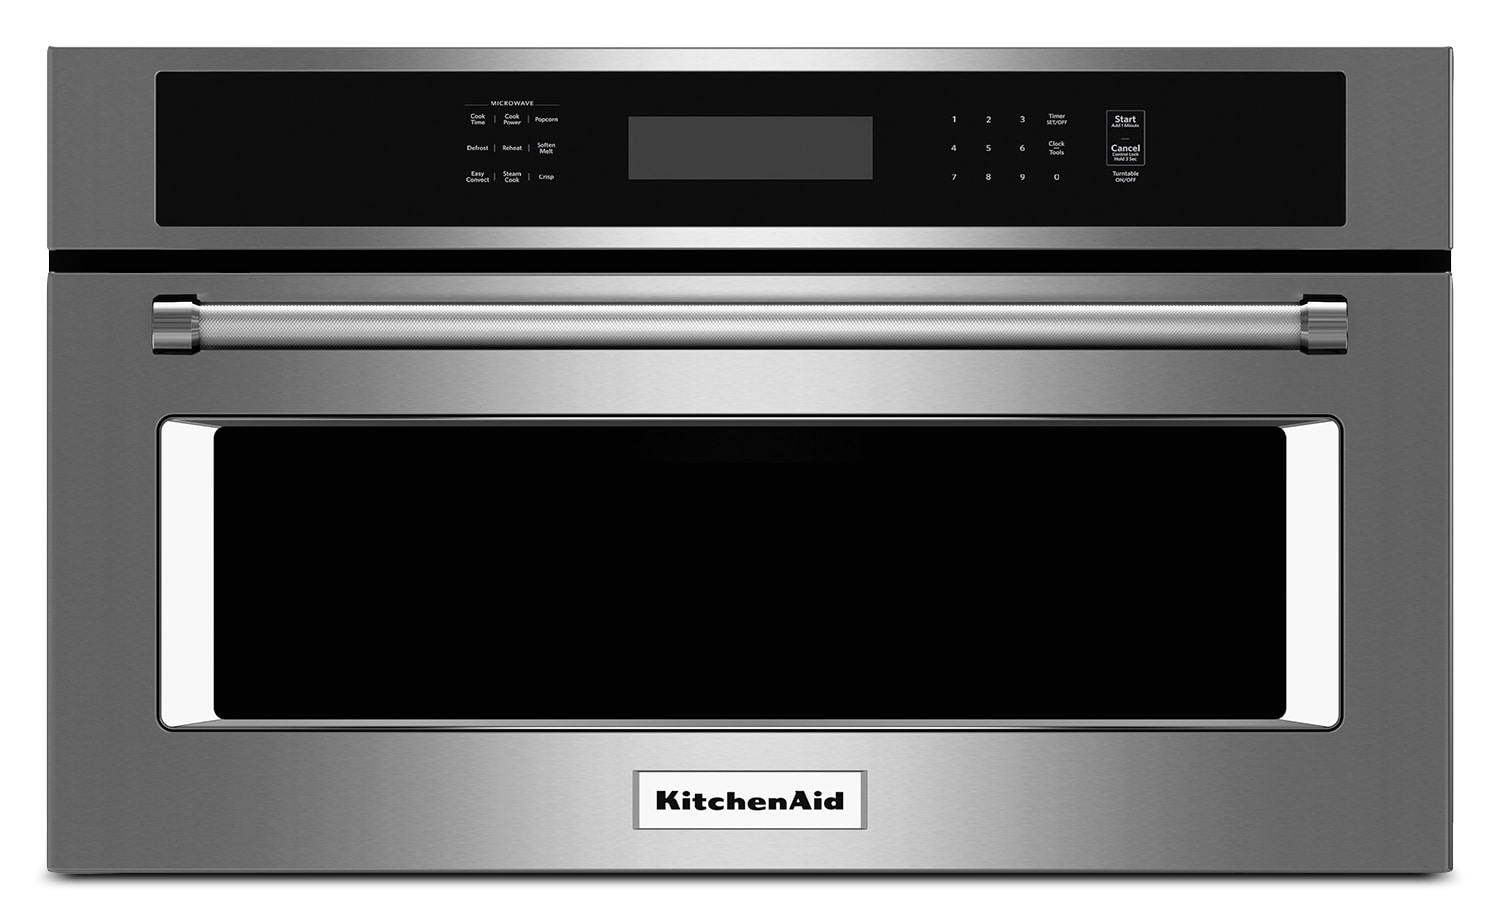 KitchenAid Stainless Steel Convection Microwave (1.4 Cu. Ft.) - KMBP100ES